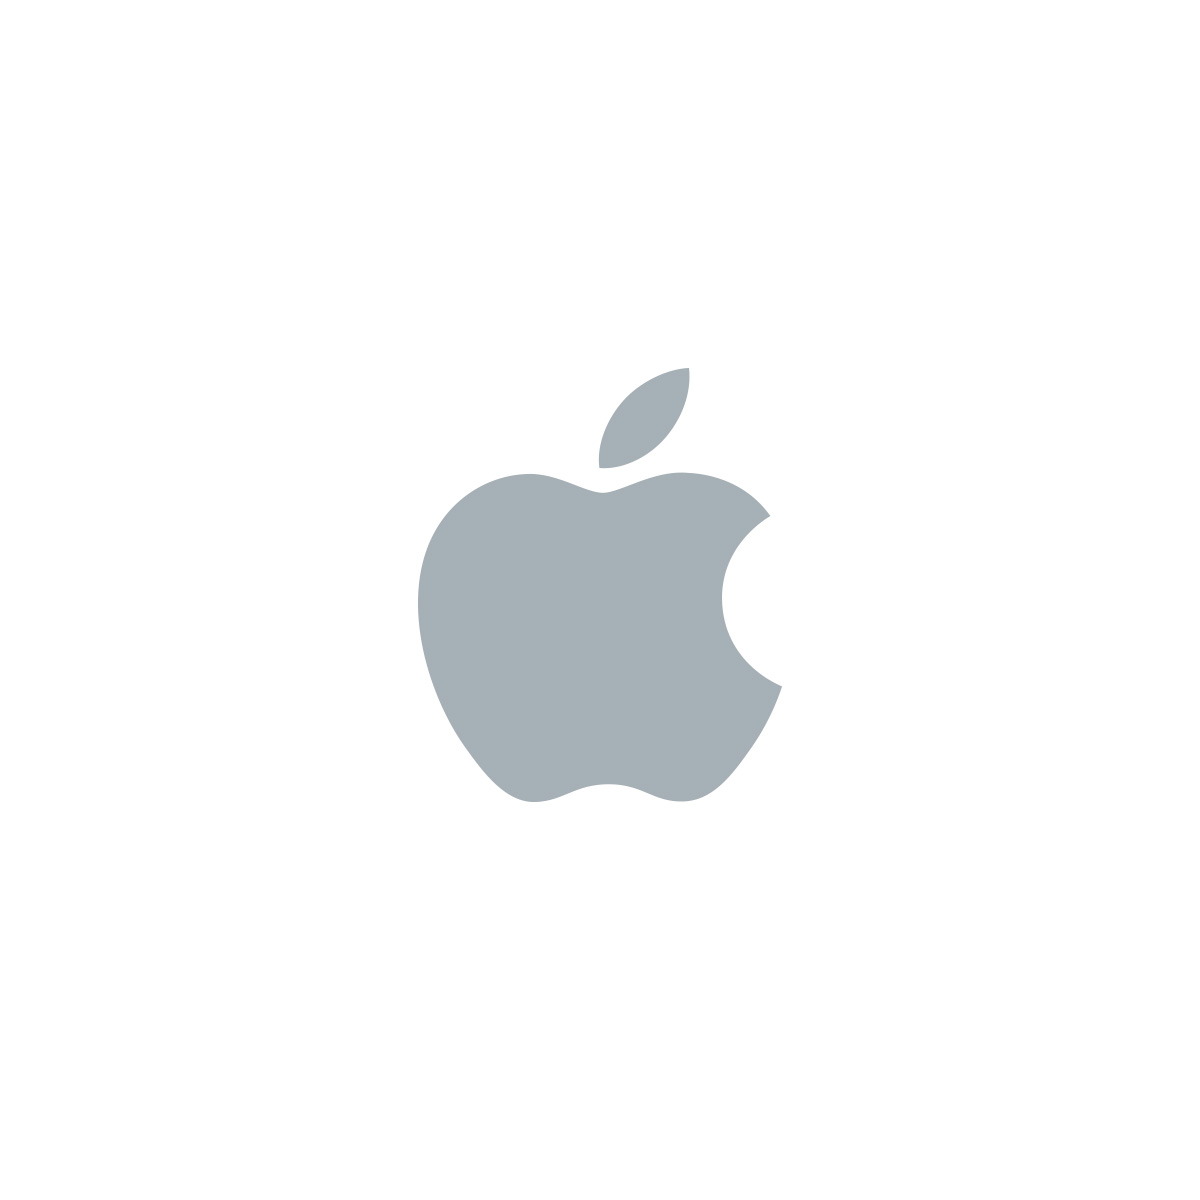 Apple Brand Logo 173.34 Kb